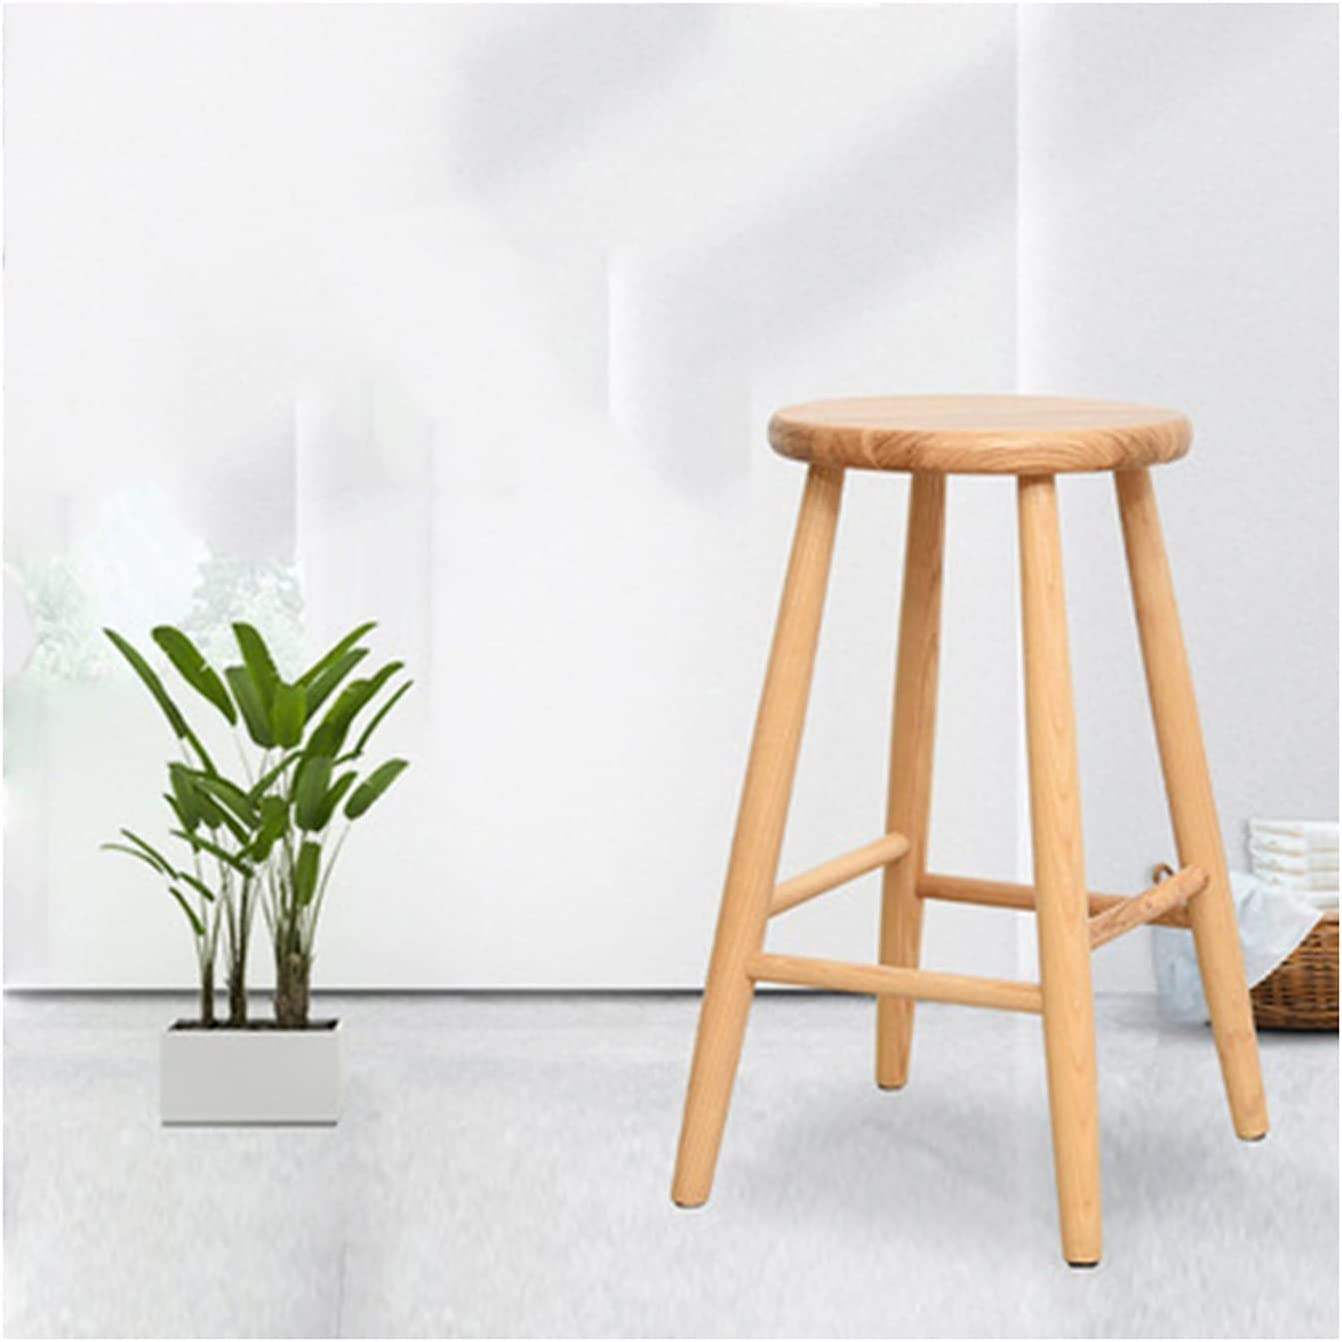 YANGLIYU Outlet SALE Bar Stools Modern Height Stool Kitche Counter New mail order